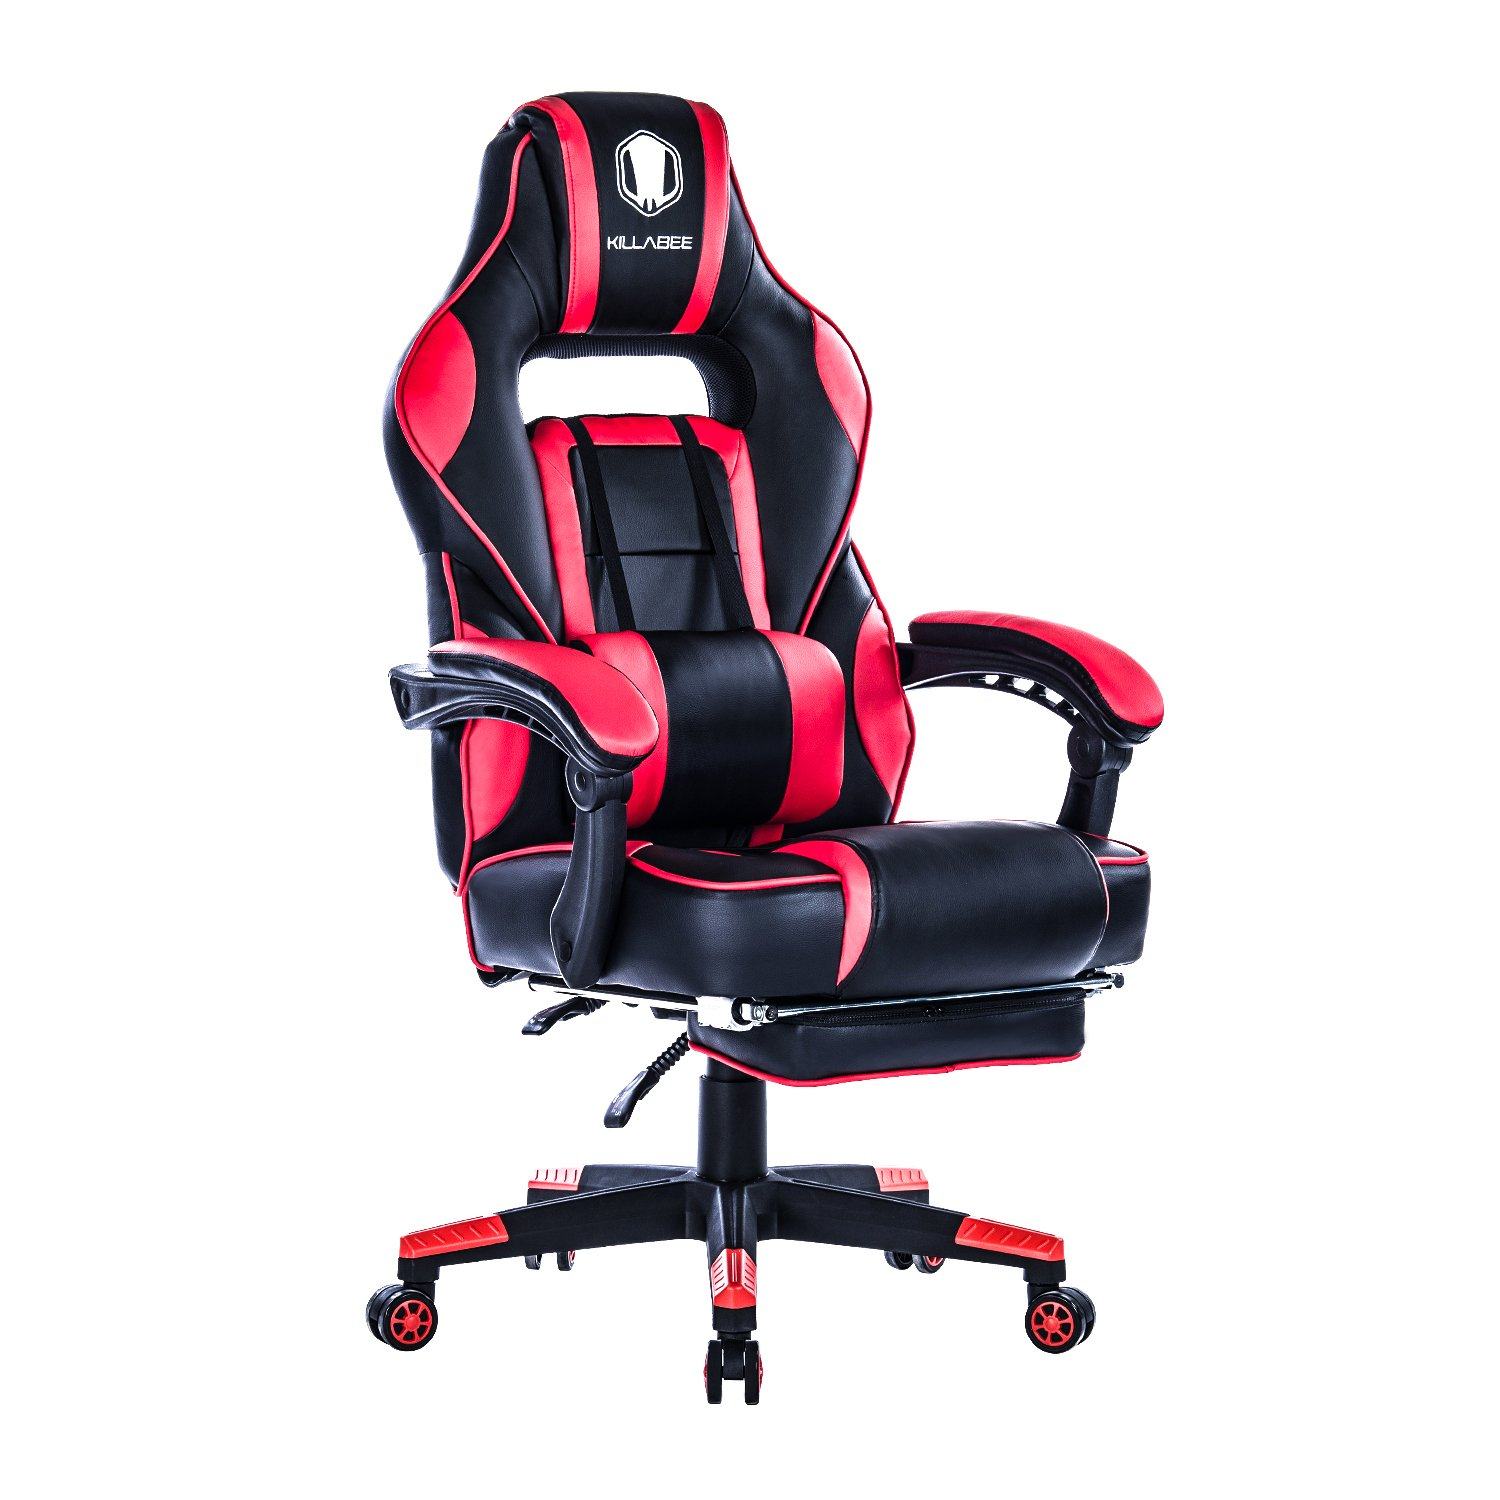 KILLABEE Reclining Racing Gaming Chair - Ergonomic High-back Office Computer Desk Chair with Retractable Footrest and Adjustable Lumbar Cushion, Red&Black